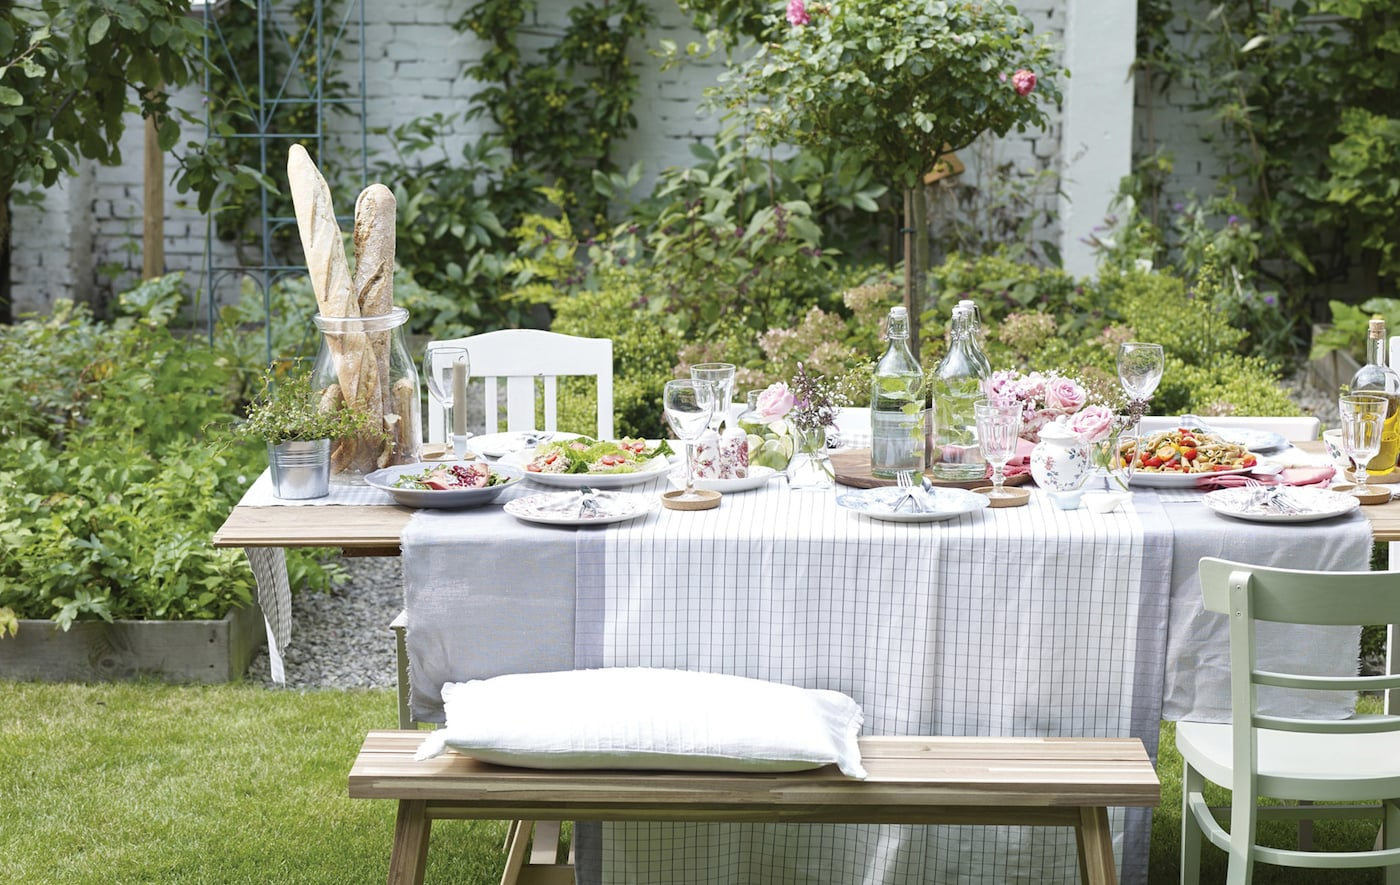 An outdoor dining table dressed with tableware, glassware and food.